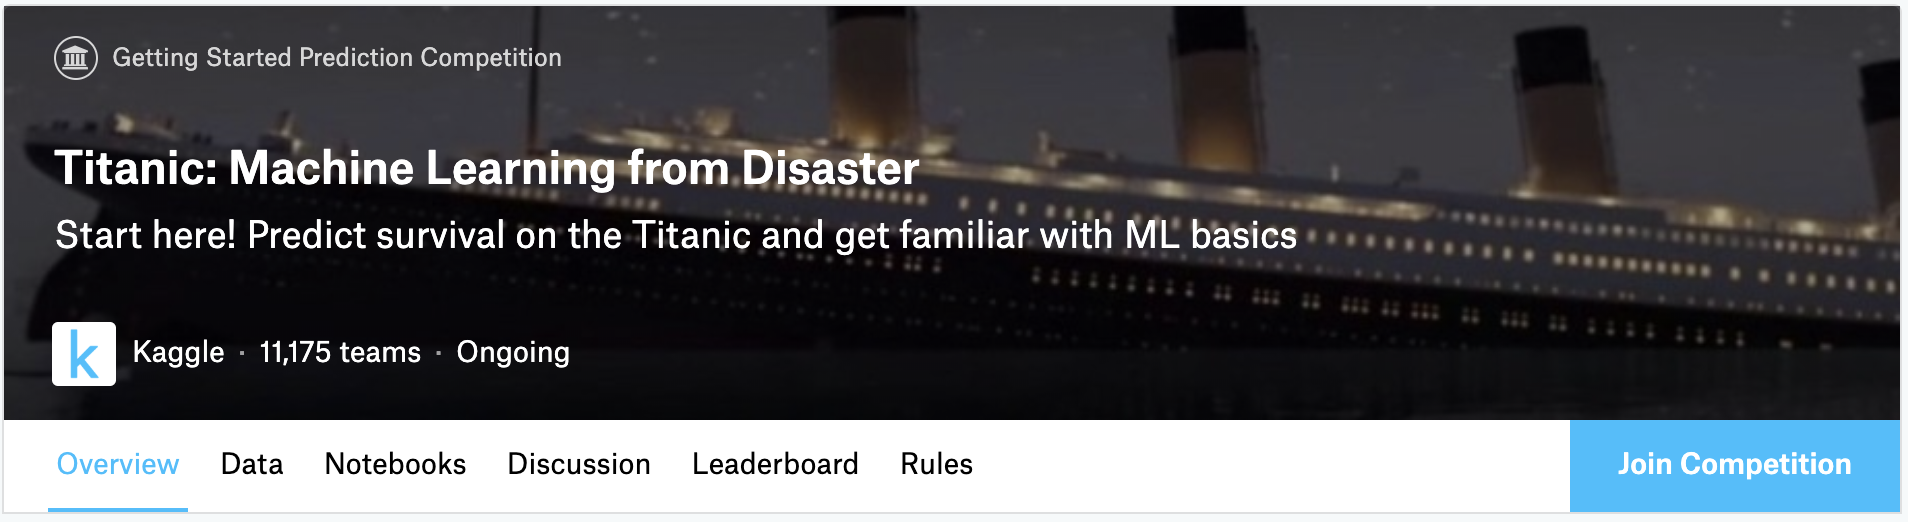 Titanic_Machine_Learning_from_Disaster